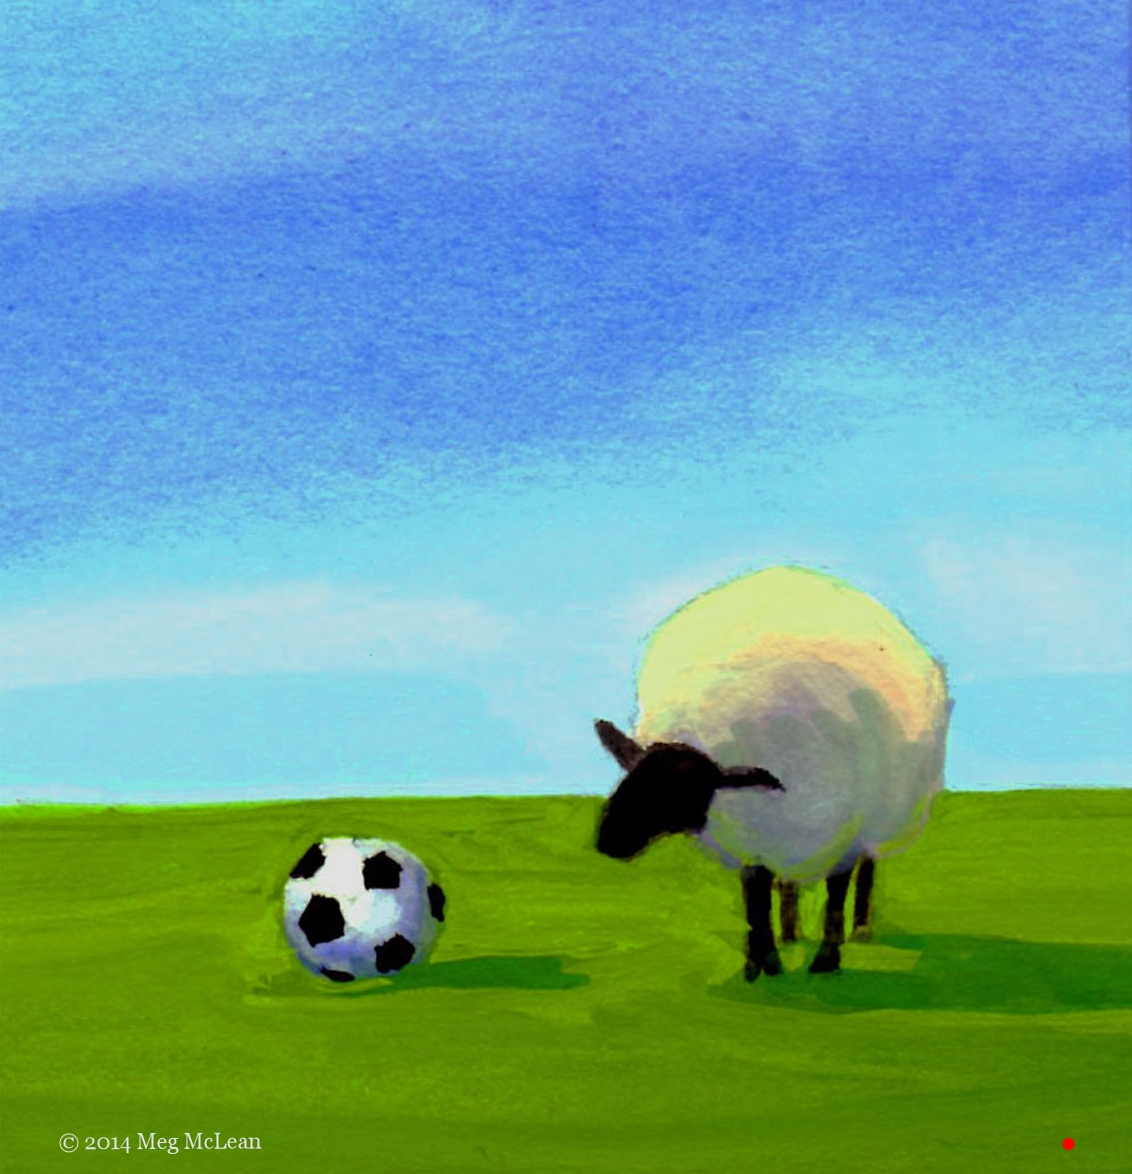 Meg McLean soccer ball sheep